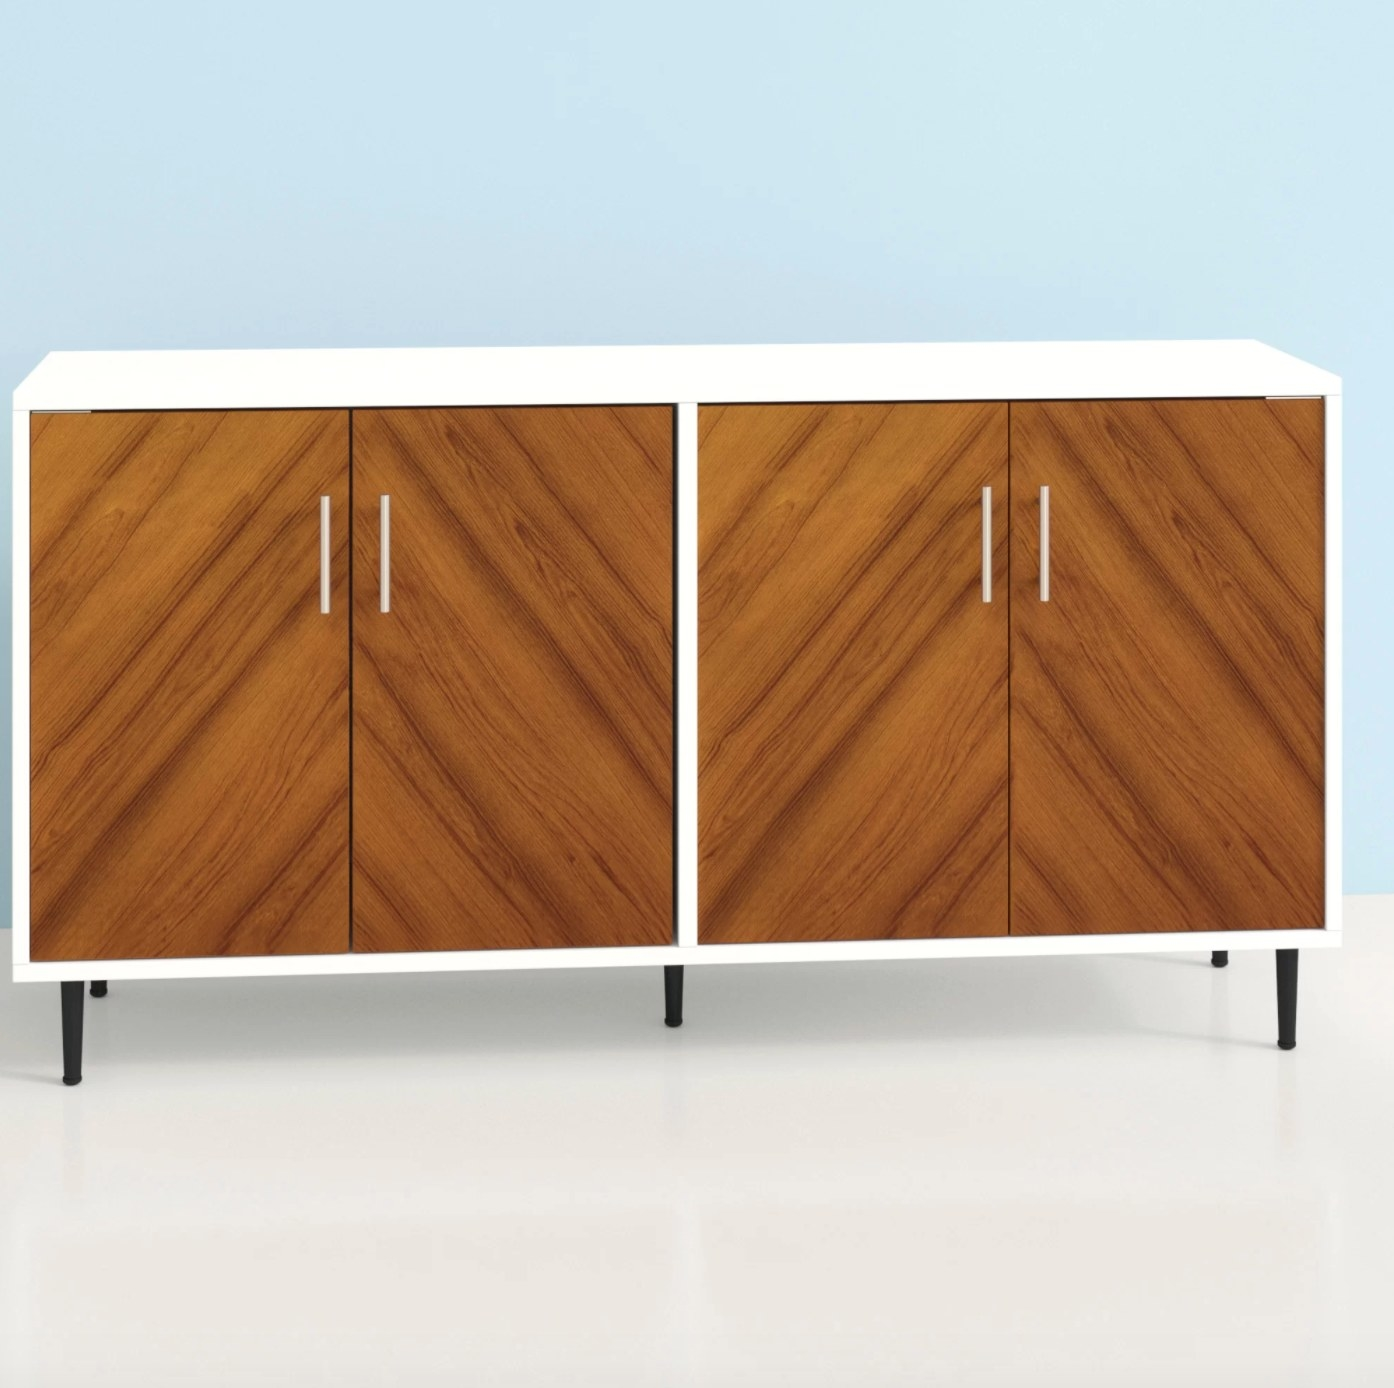 The sideboard in wood and white